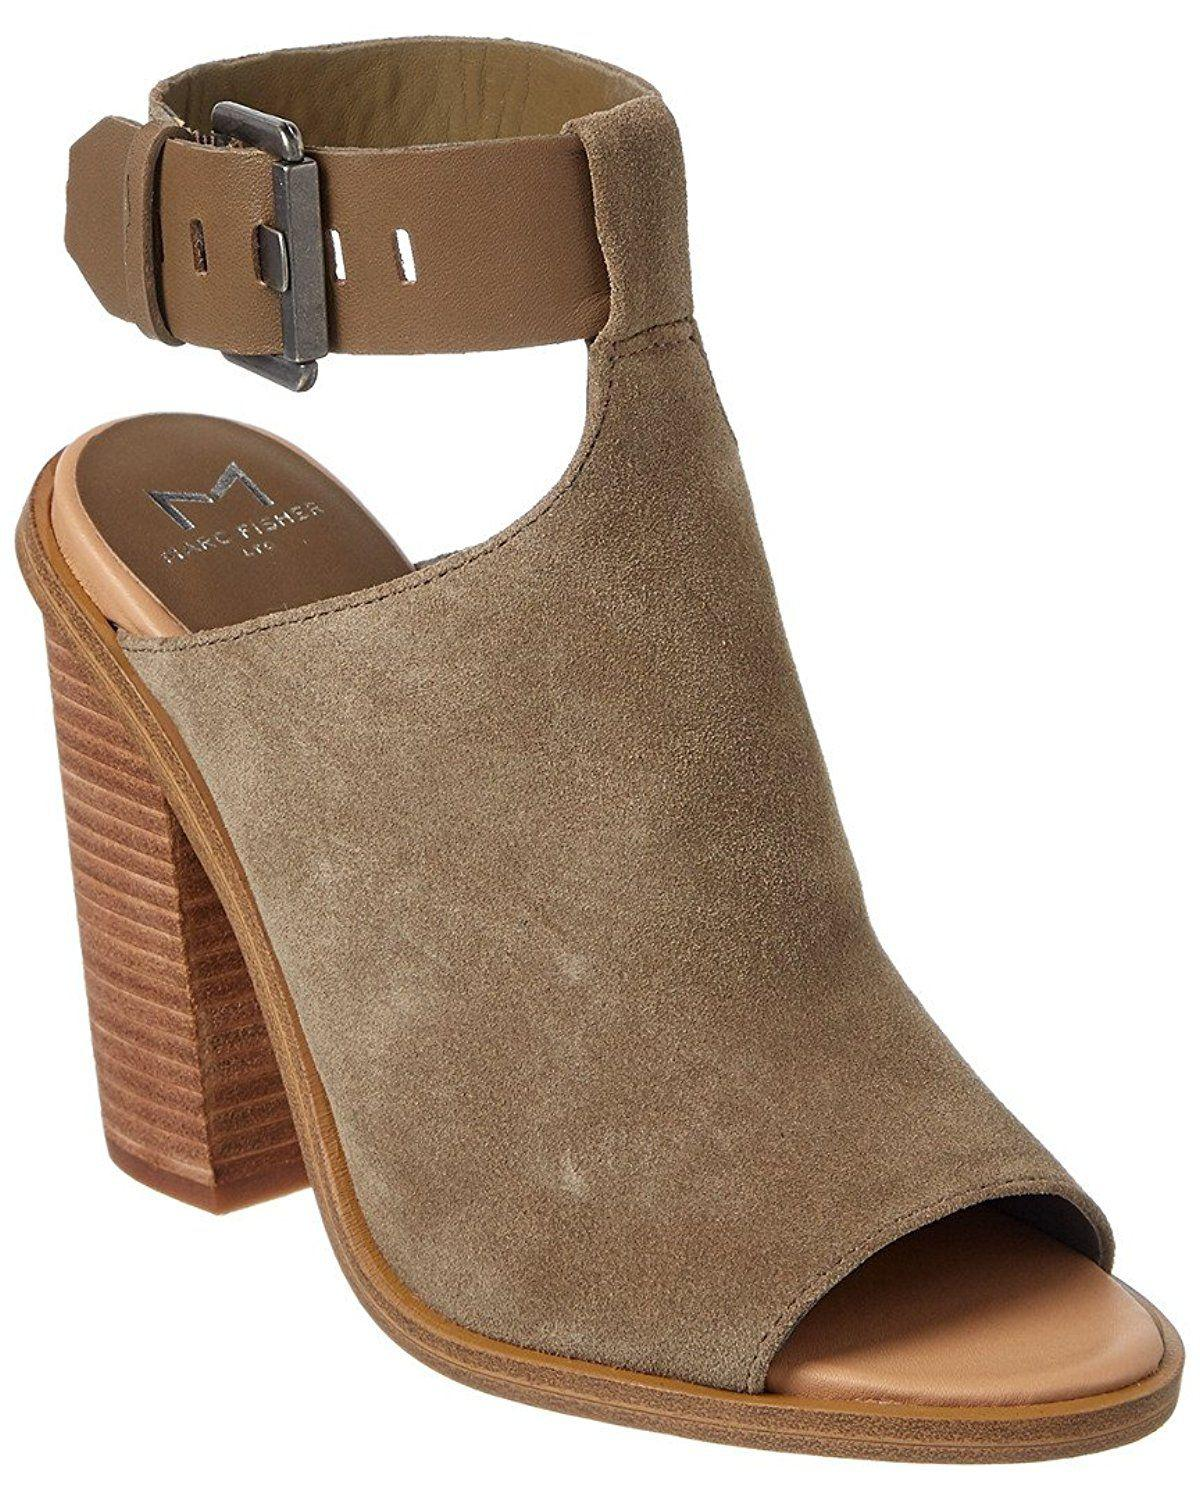 333ef0f67ea Lyst - Marc Fisher Womens Vashi Leather Open Toe Casual Ankle Strap ...